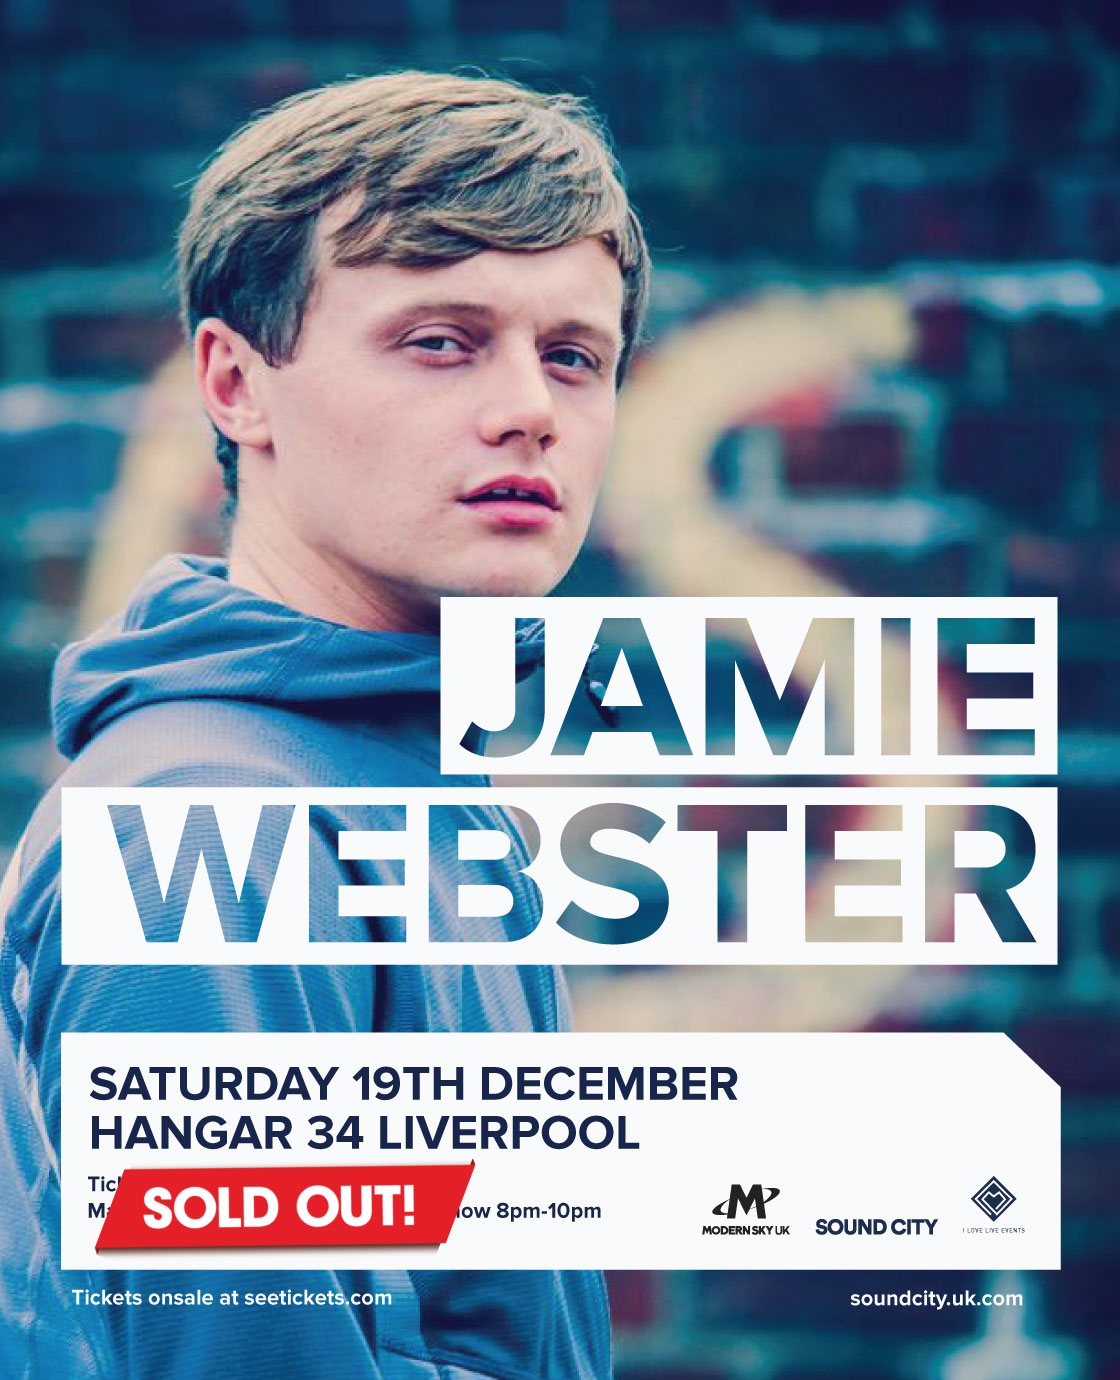 Jamie Webster's Socially Distanced Shows SOLD OUT in seconds